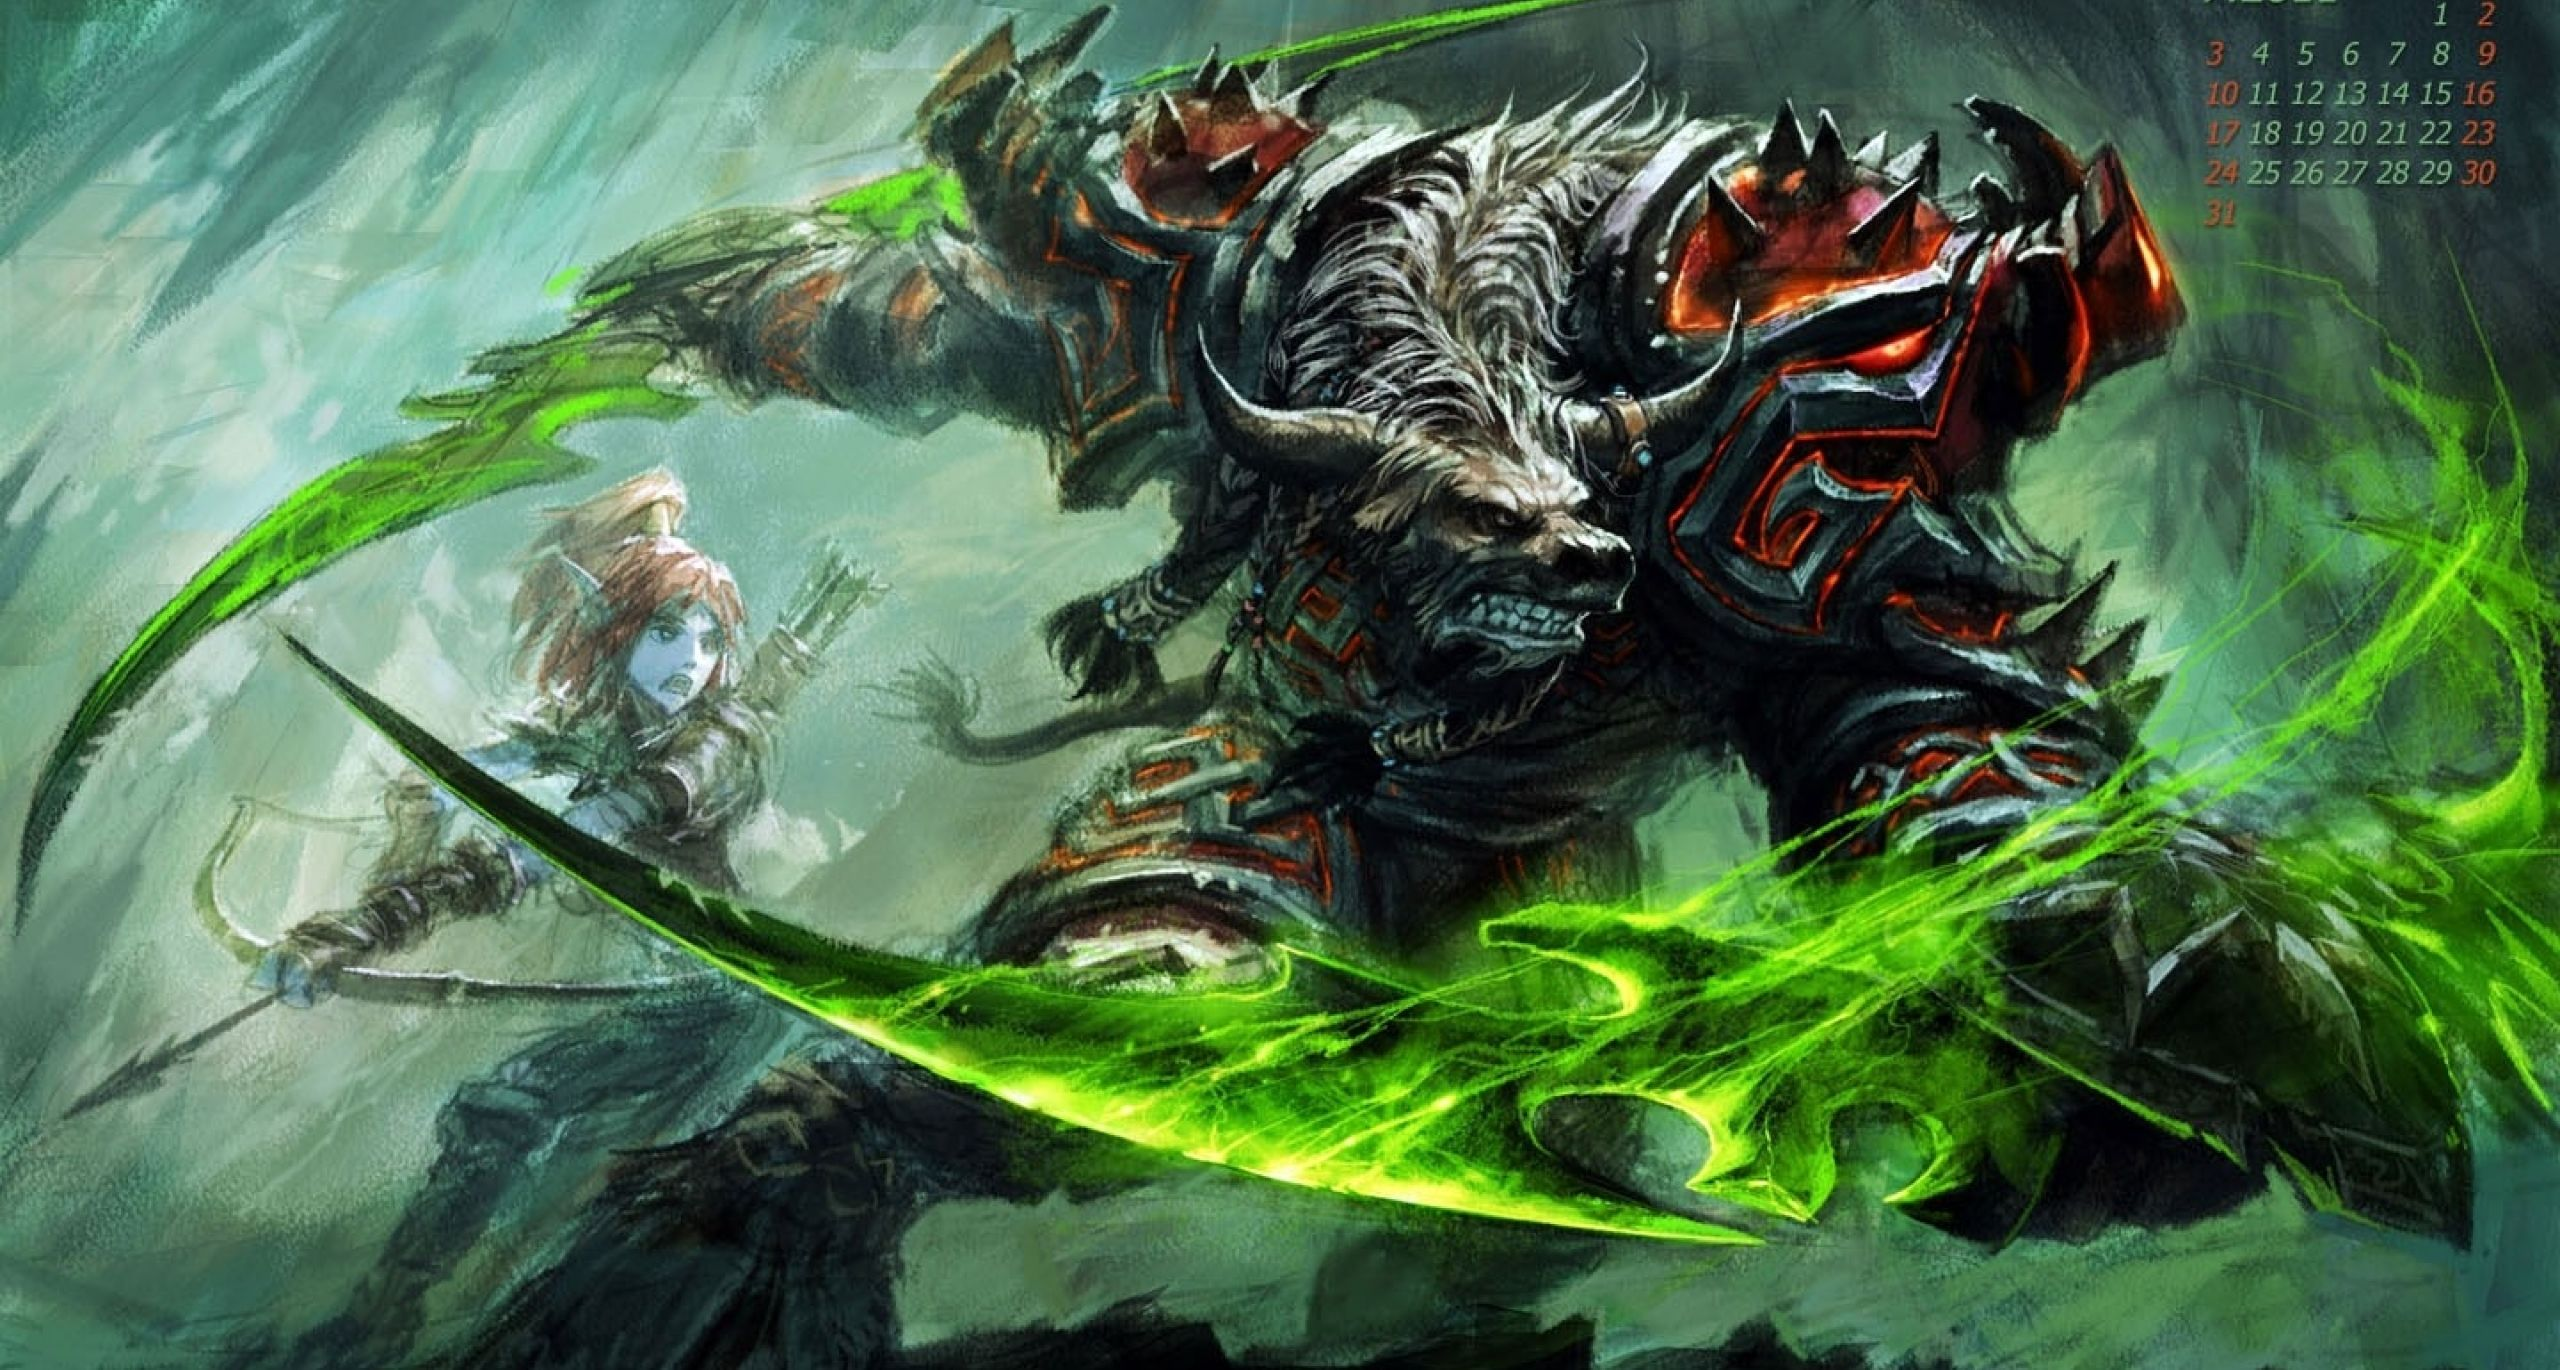 Hearthstone Podcast Rogue And Hunter Cards Elves Fantasy World Of Warcraft Wallpaper World Of Warcraft